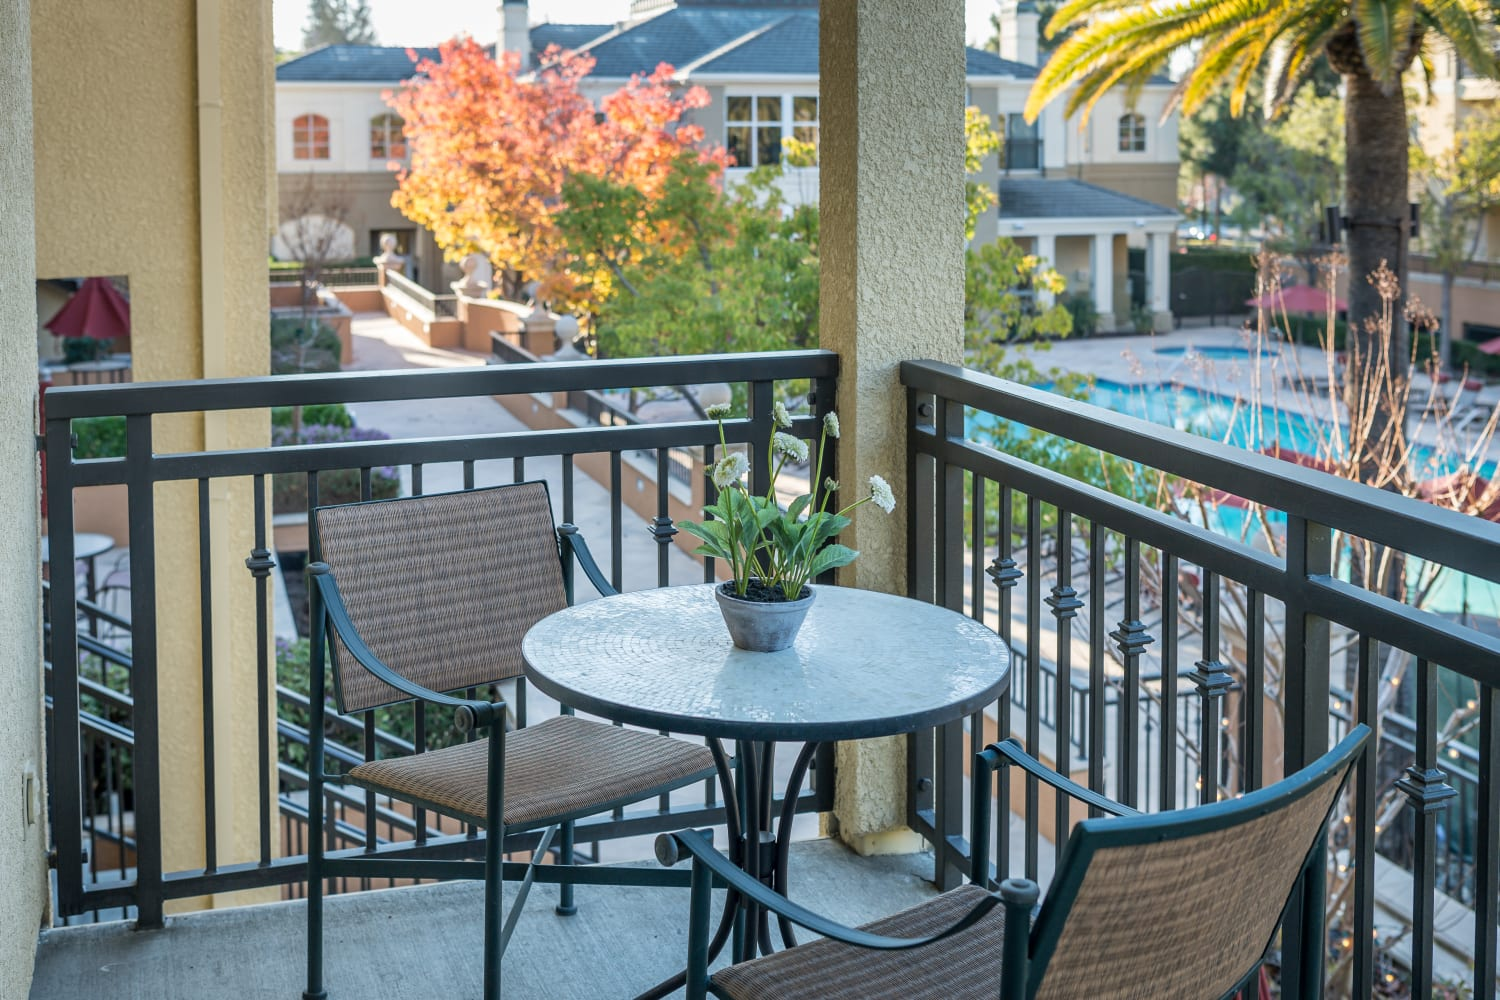 Enjoy apartments with private patios at The Carlyle in Santa Clara, California